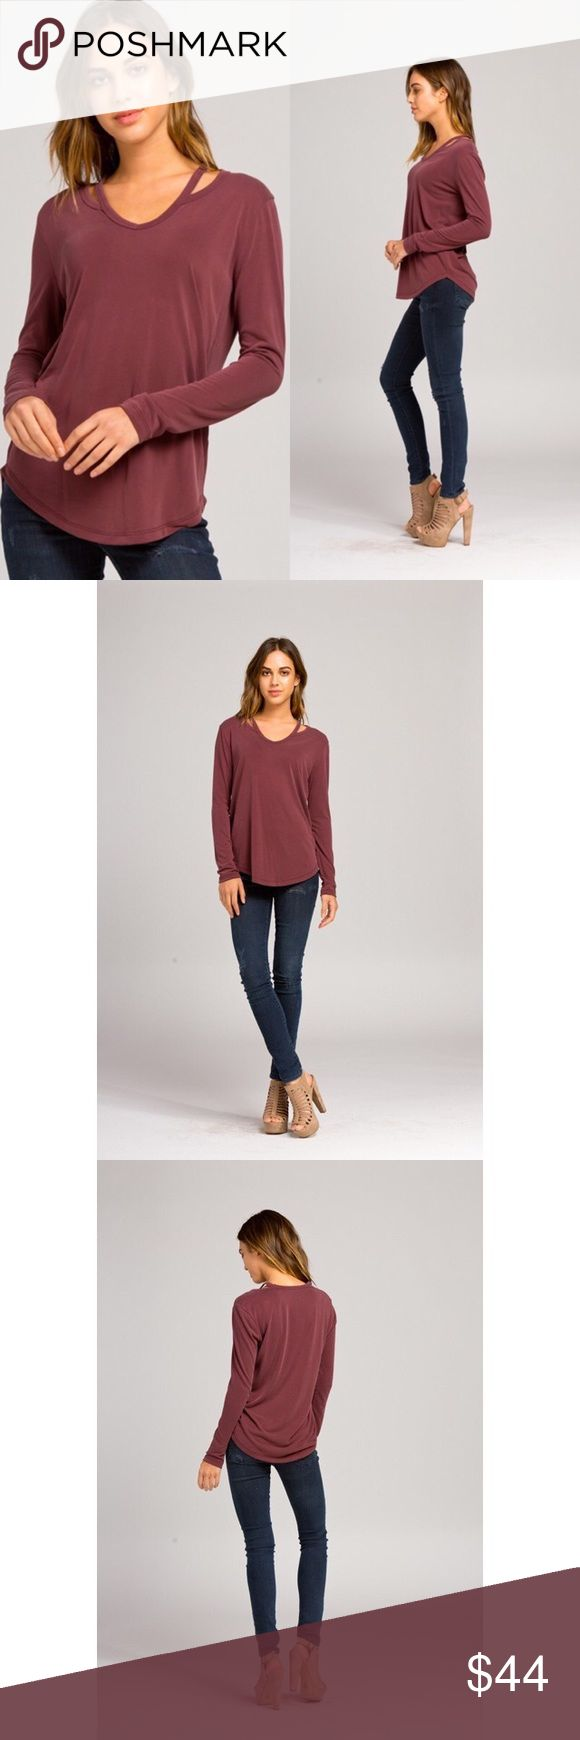 Burgundy Basic W/ Cutout Semi-loose fit, V-neck, long sleeve. Has cutout detail at sides of neck and rounded hens. Has a very soft velvety silk feel. Has good stretch. 73% modal 27% polyester. No trades. No lowball offers. Also available in charcoal. Tops